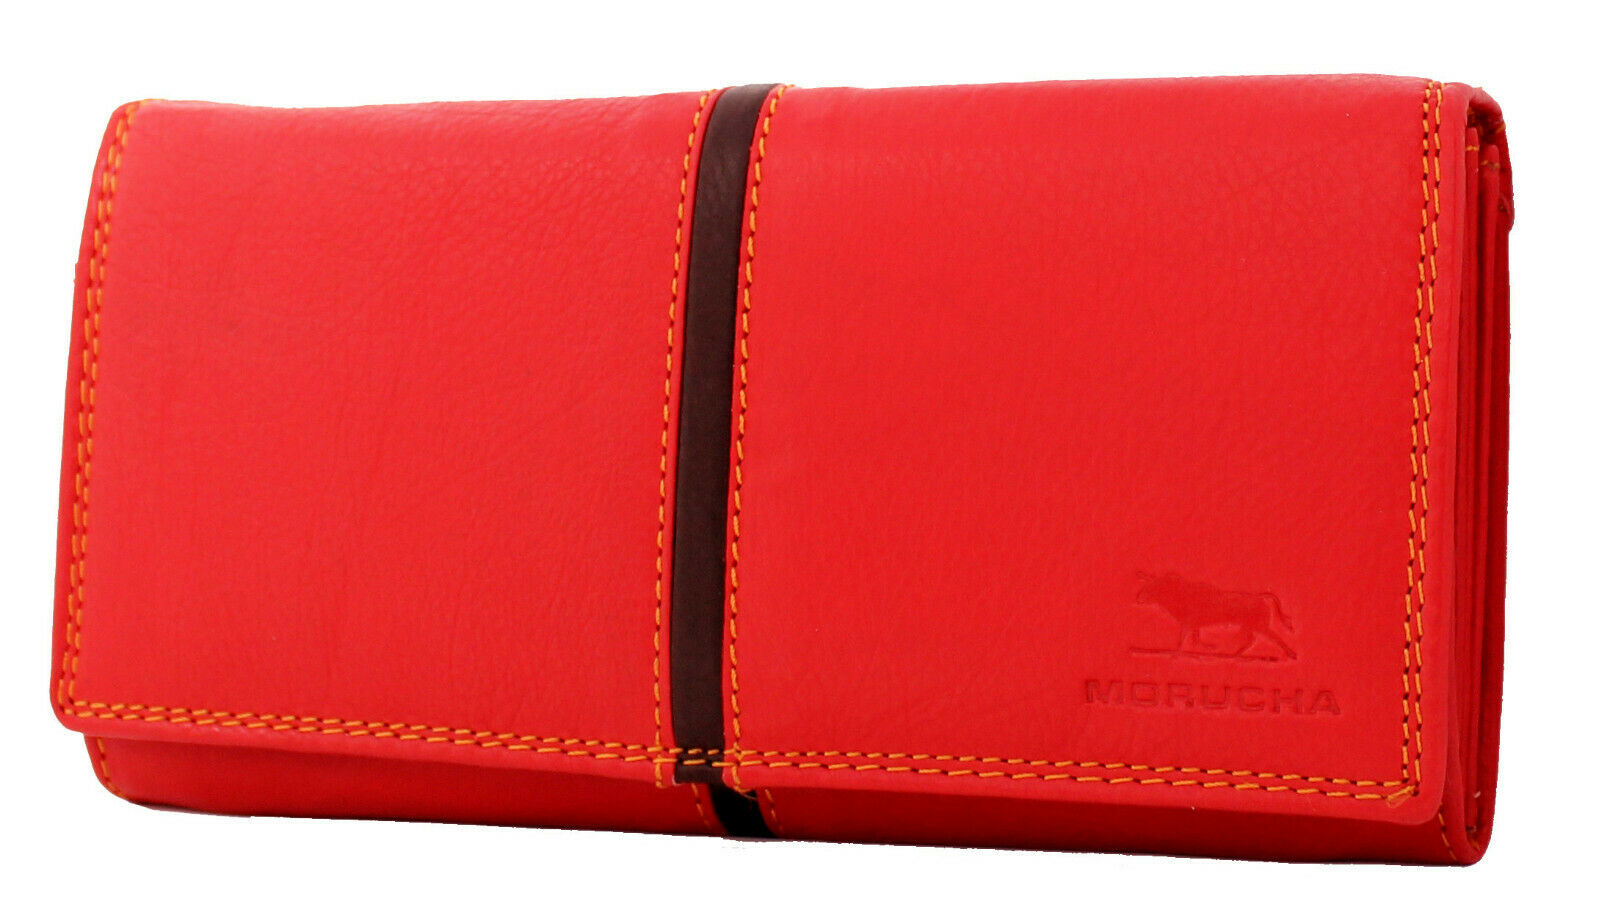 Morucha Clutch Wallet For Women Real Leather RFID Blocking High Capacity Purse